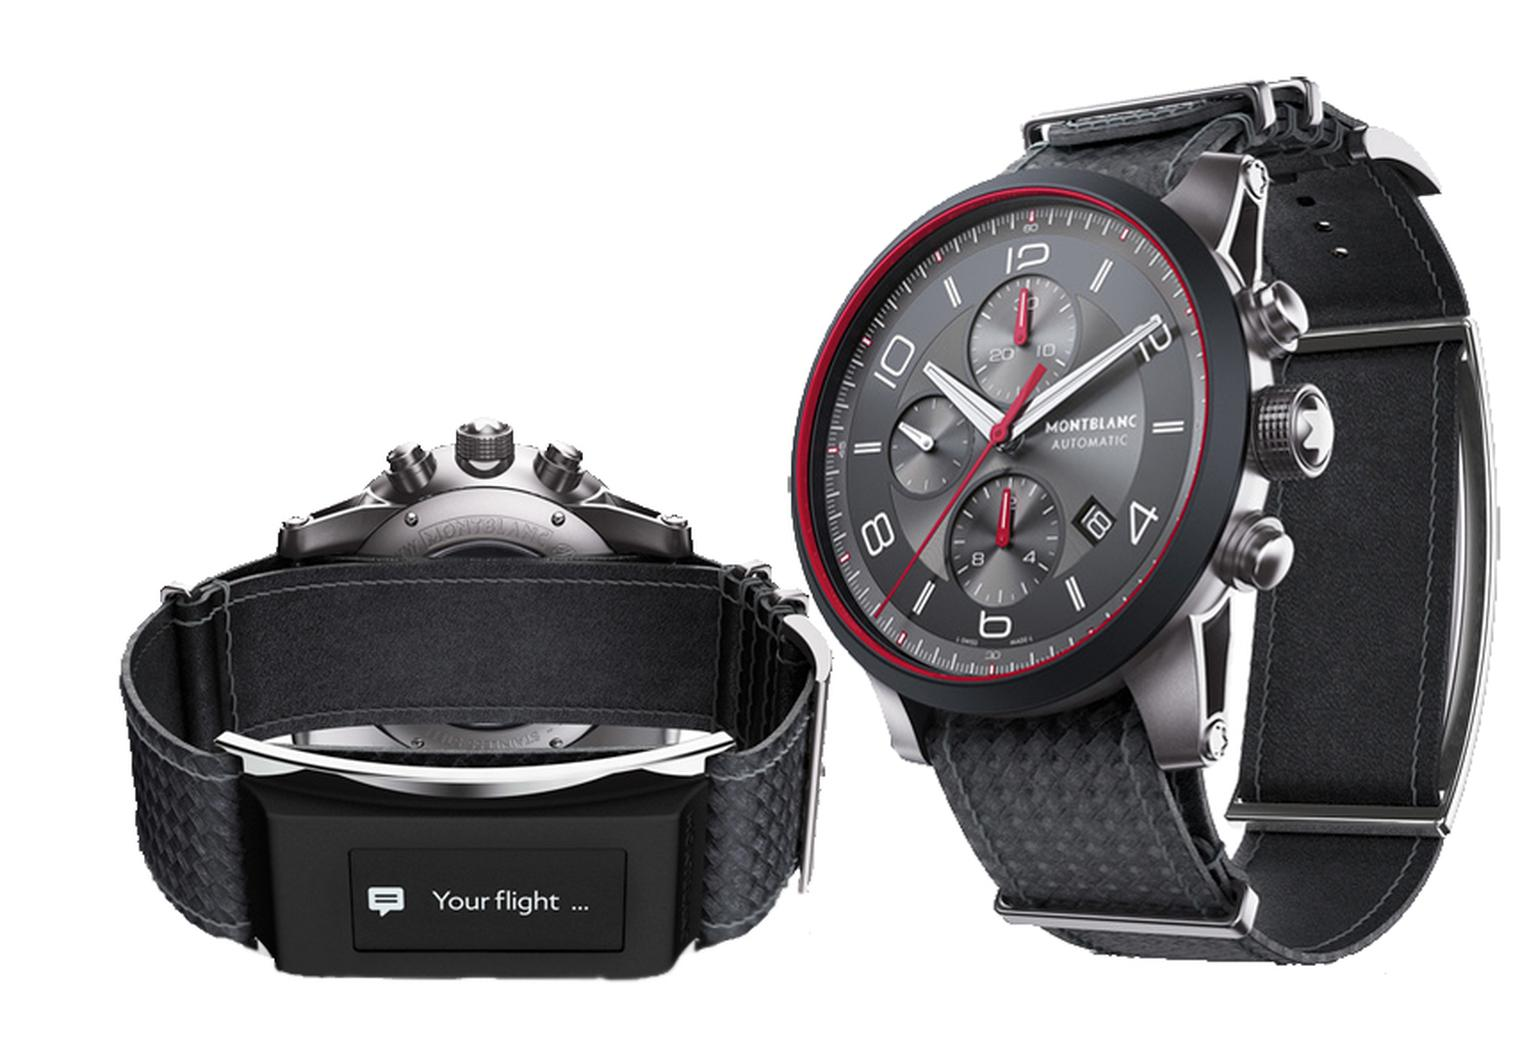 Montblanc Timewalker Urban Speed Chronograph e-Strap watch